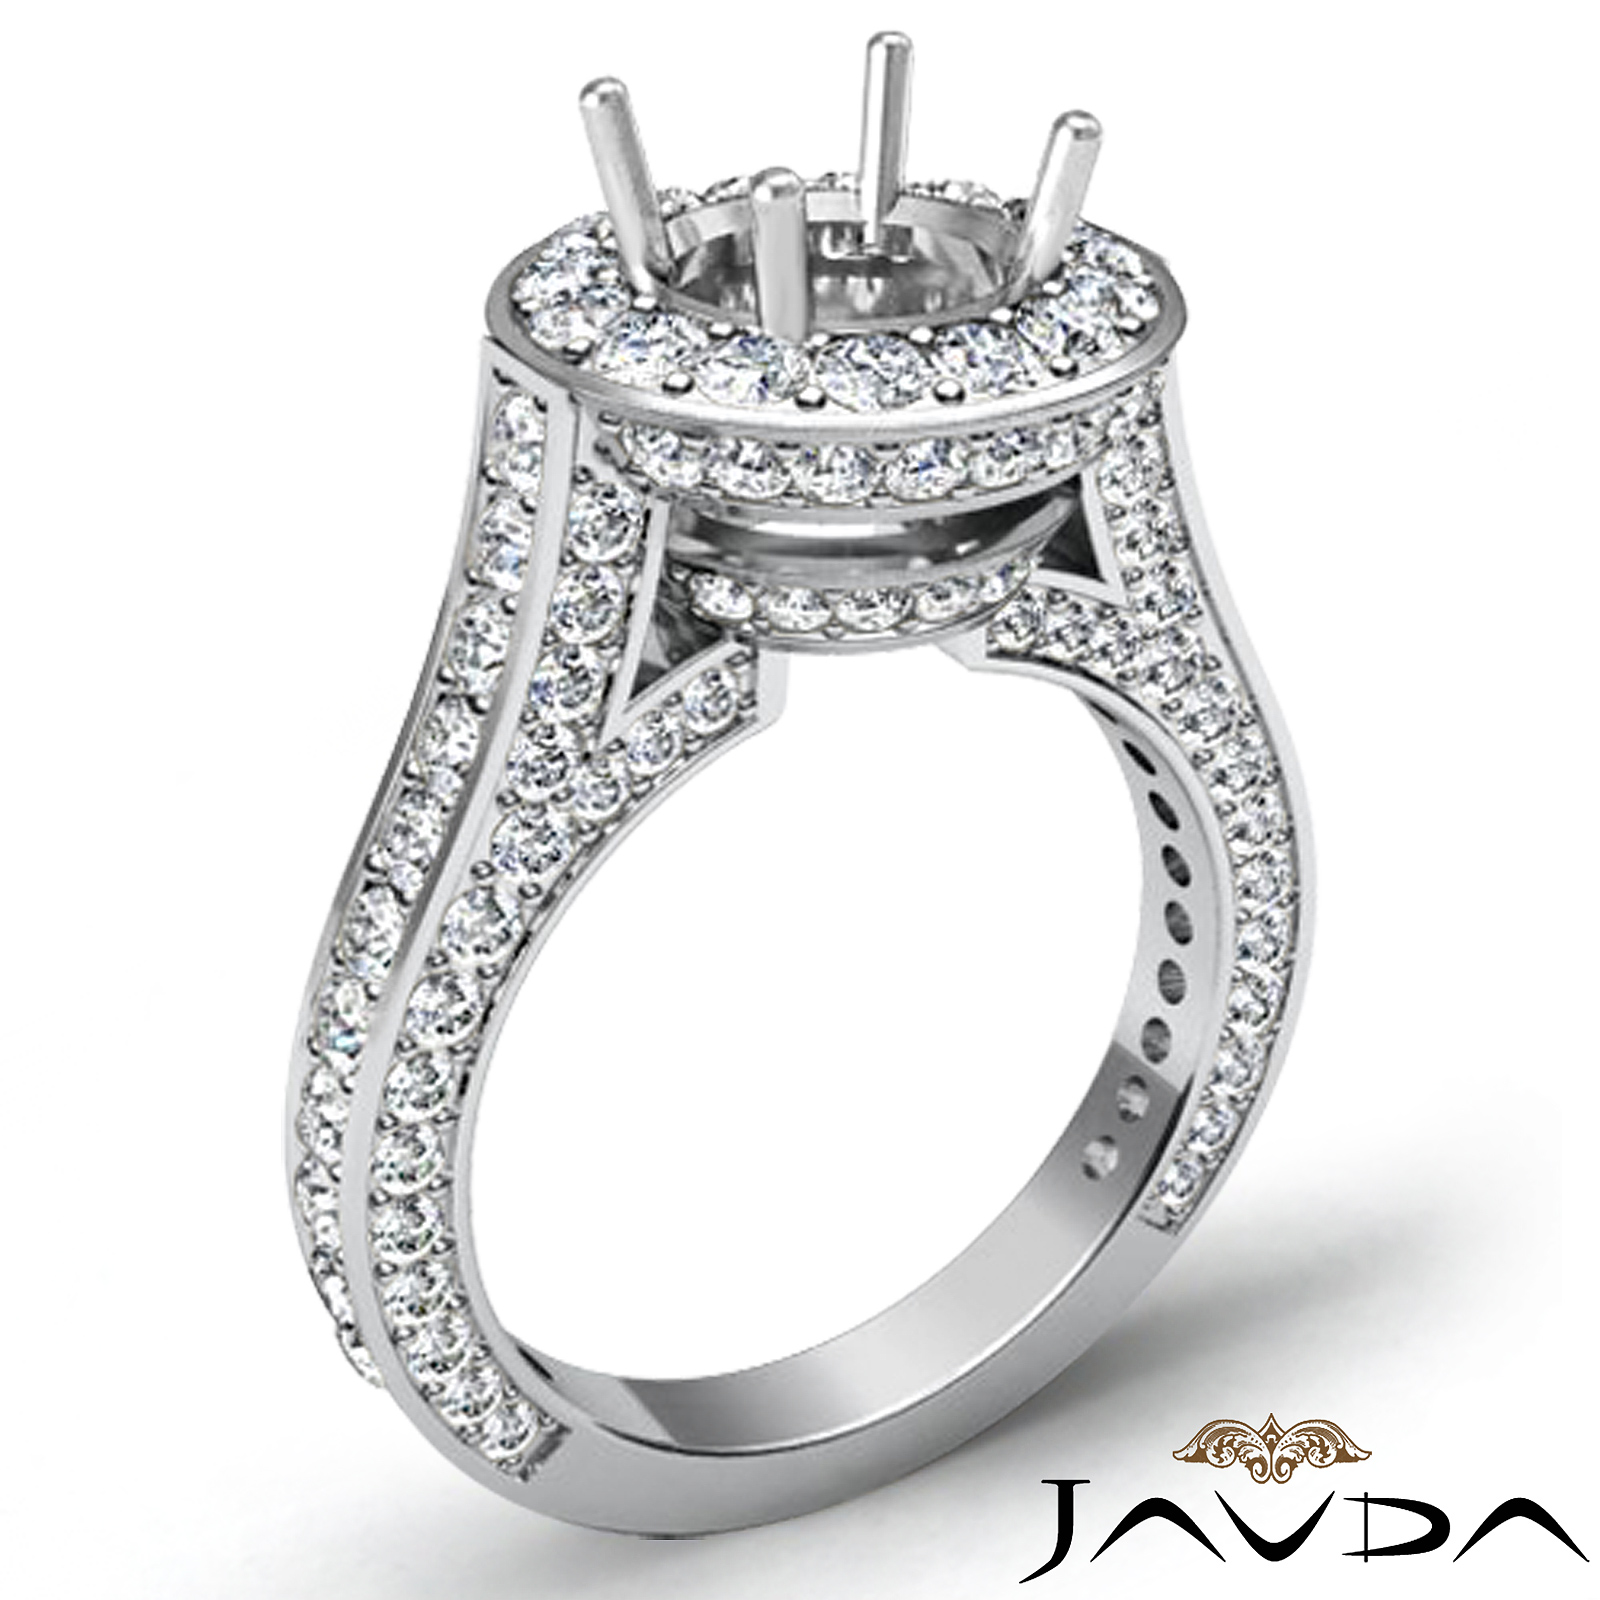 Diamond engagement round shape semi mount platinum